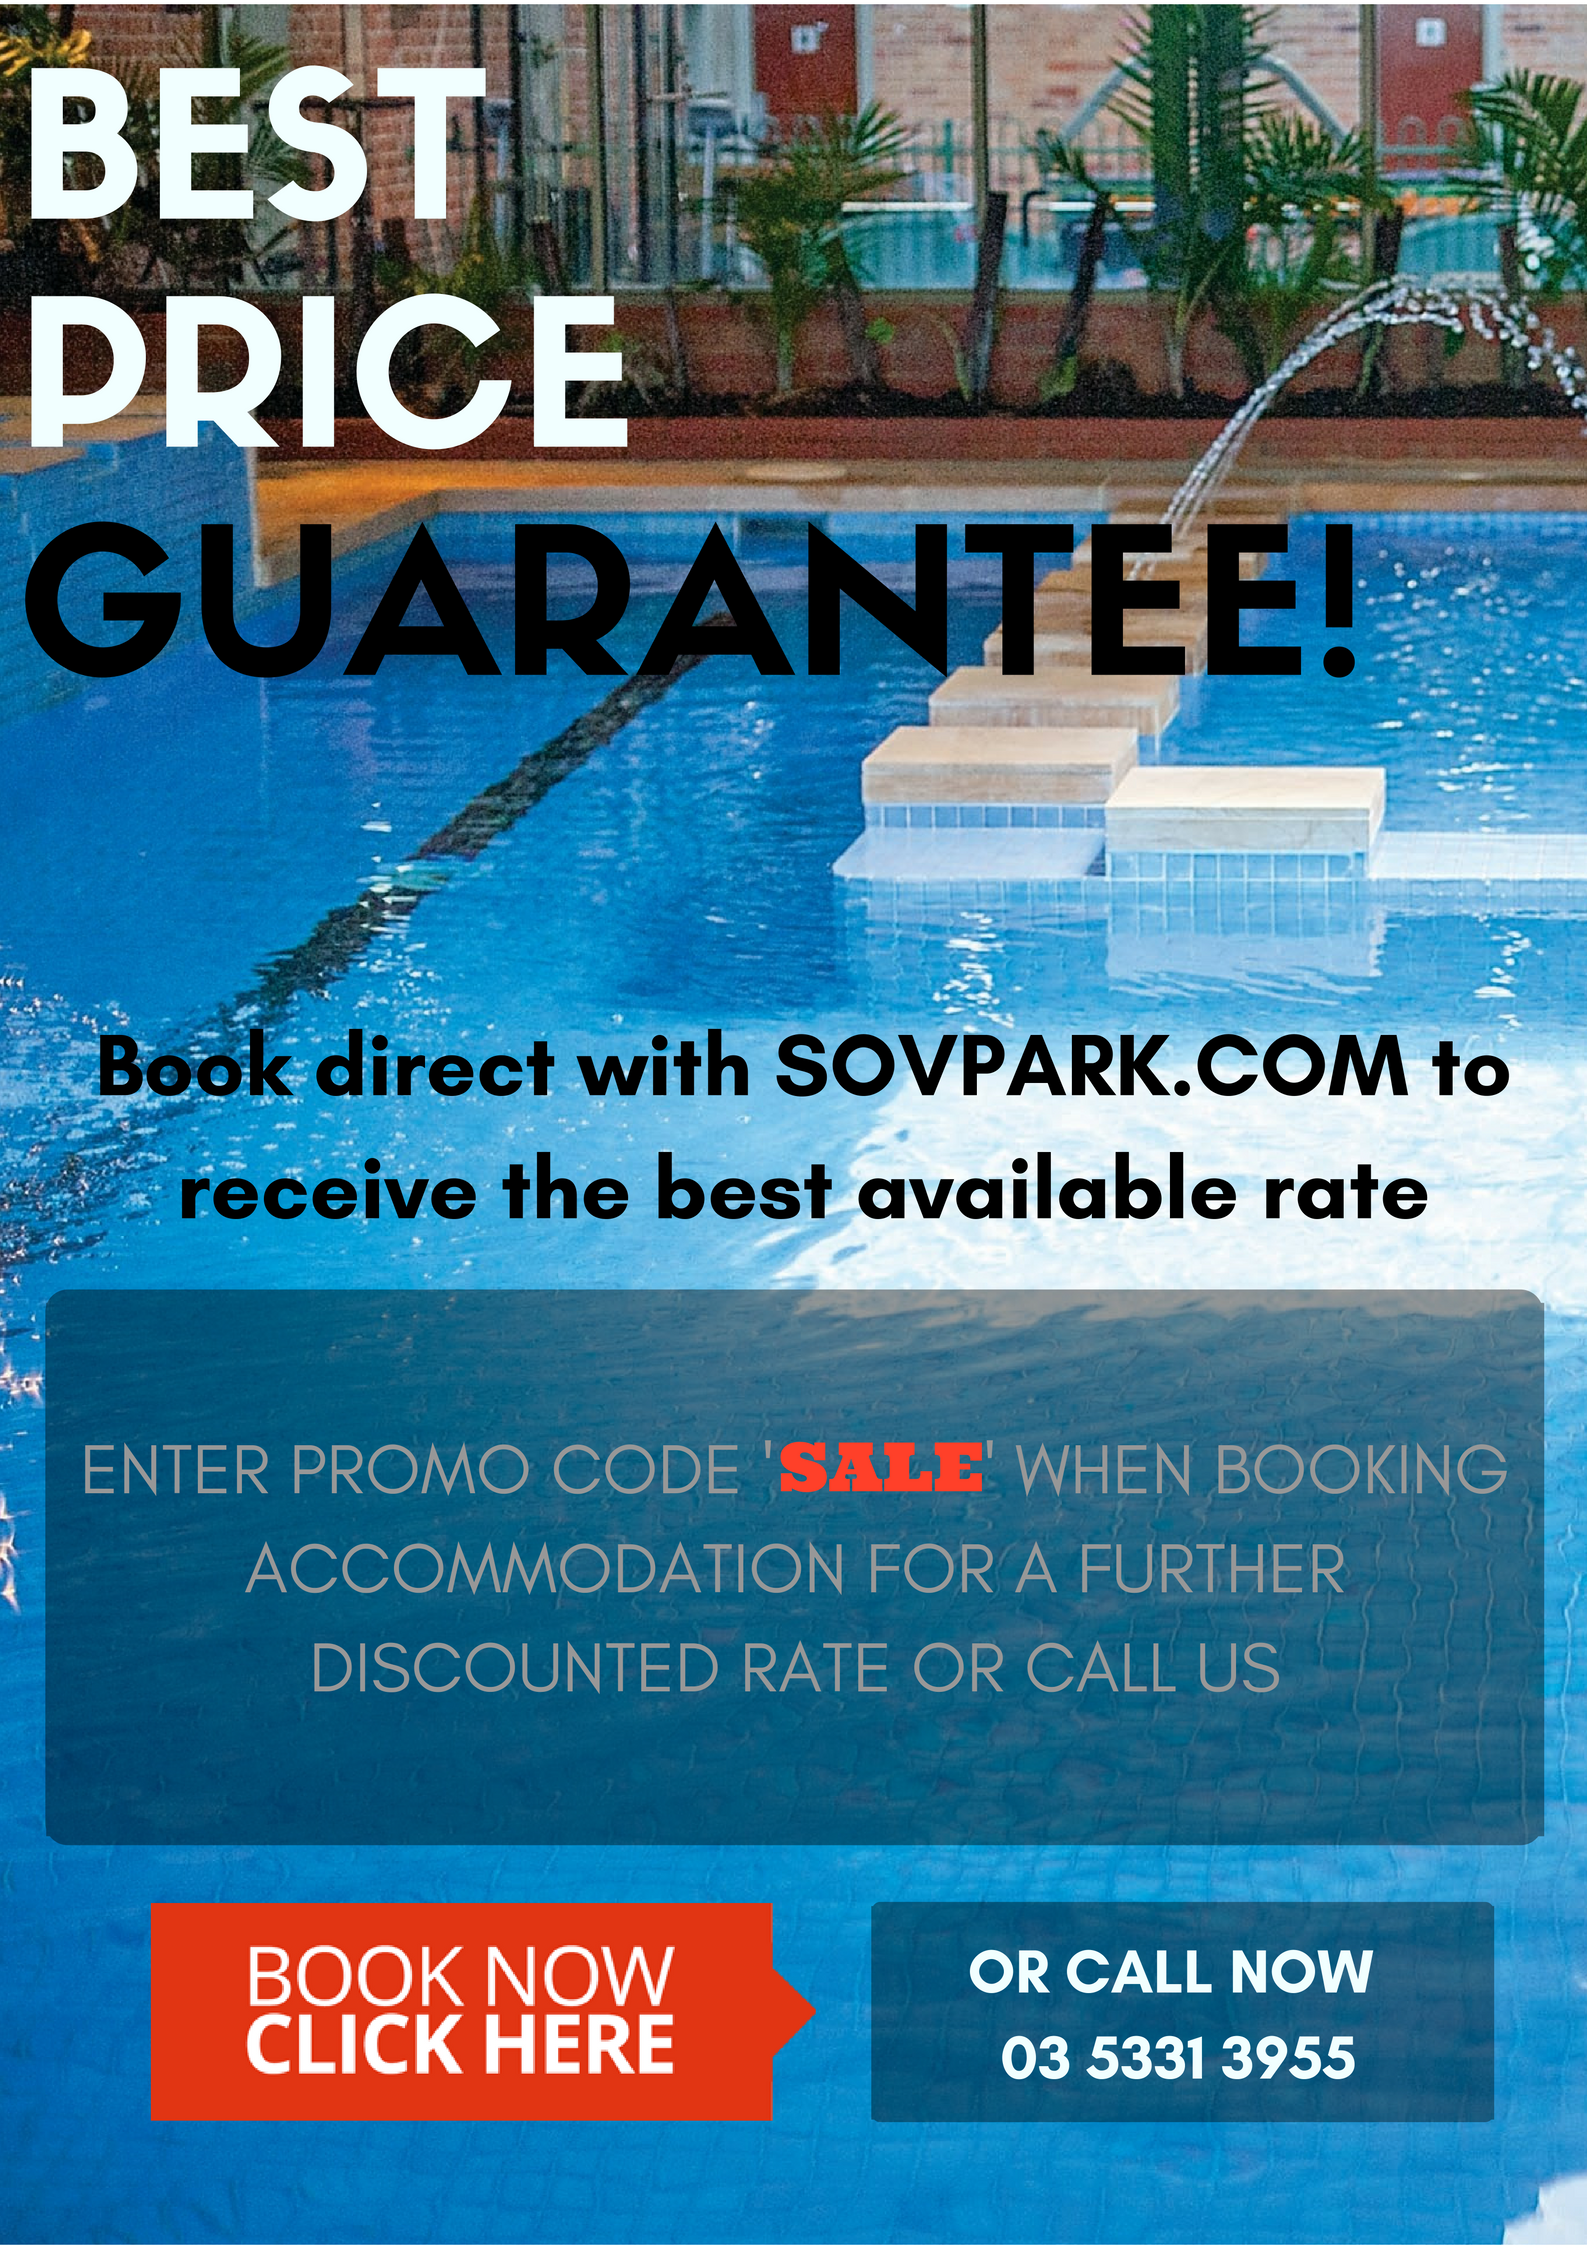 Sovereign Park Motor Inn August 16 Promotion